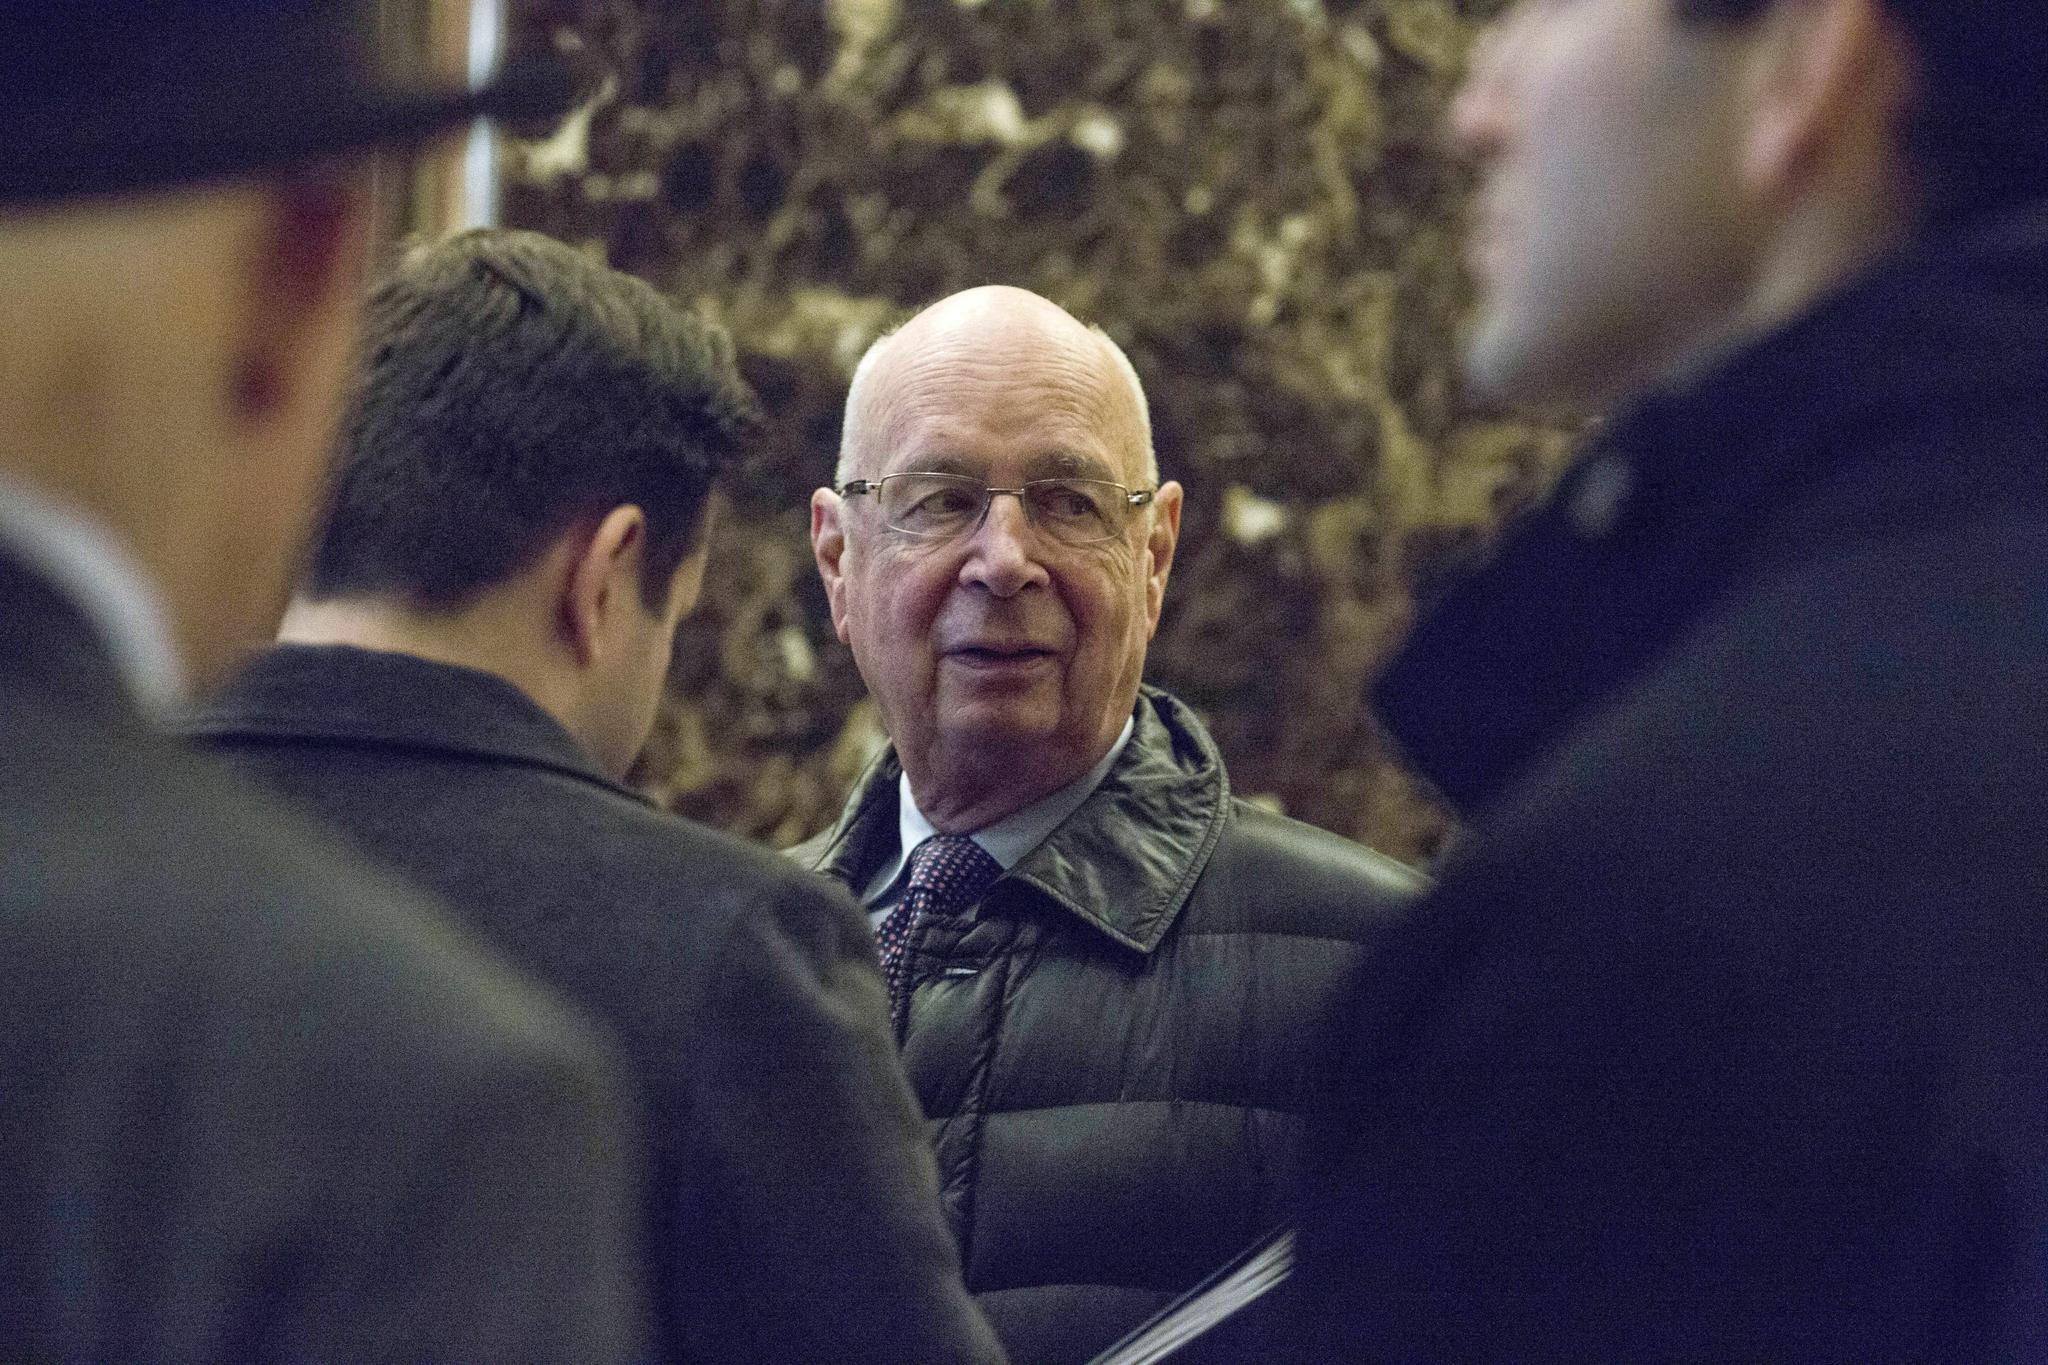 Klaus Schwab, executive chairman of the World Economic Forum (WEF), arrives in the lobby of Trump Tower in New York on December 13, 2016. Schwab was invited to a meeting with Trump.